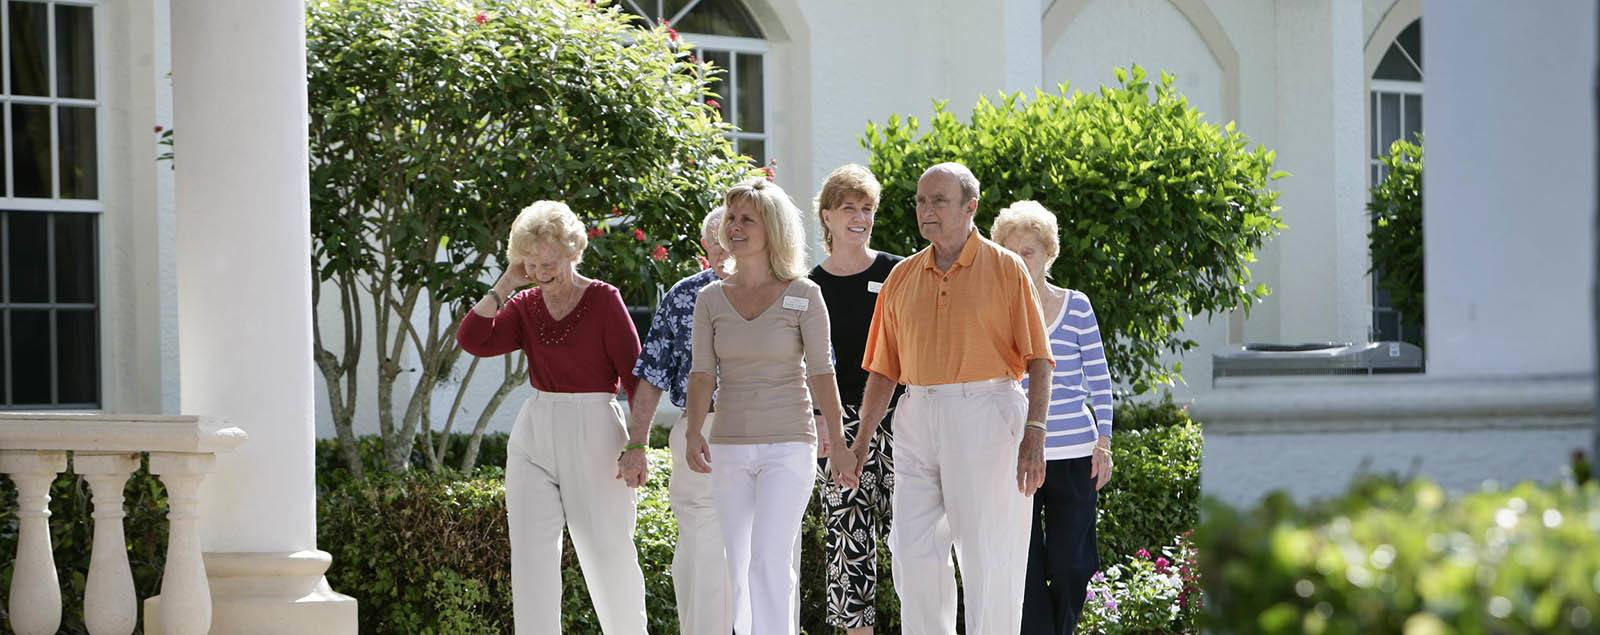 Schedule a senior living tour in Naples